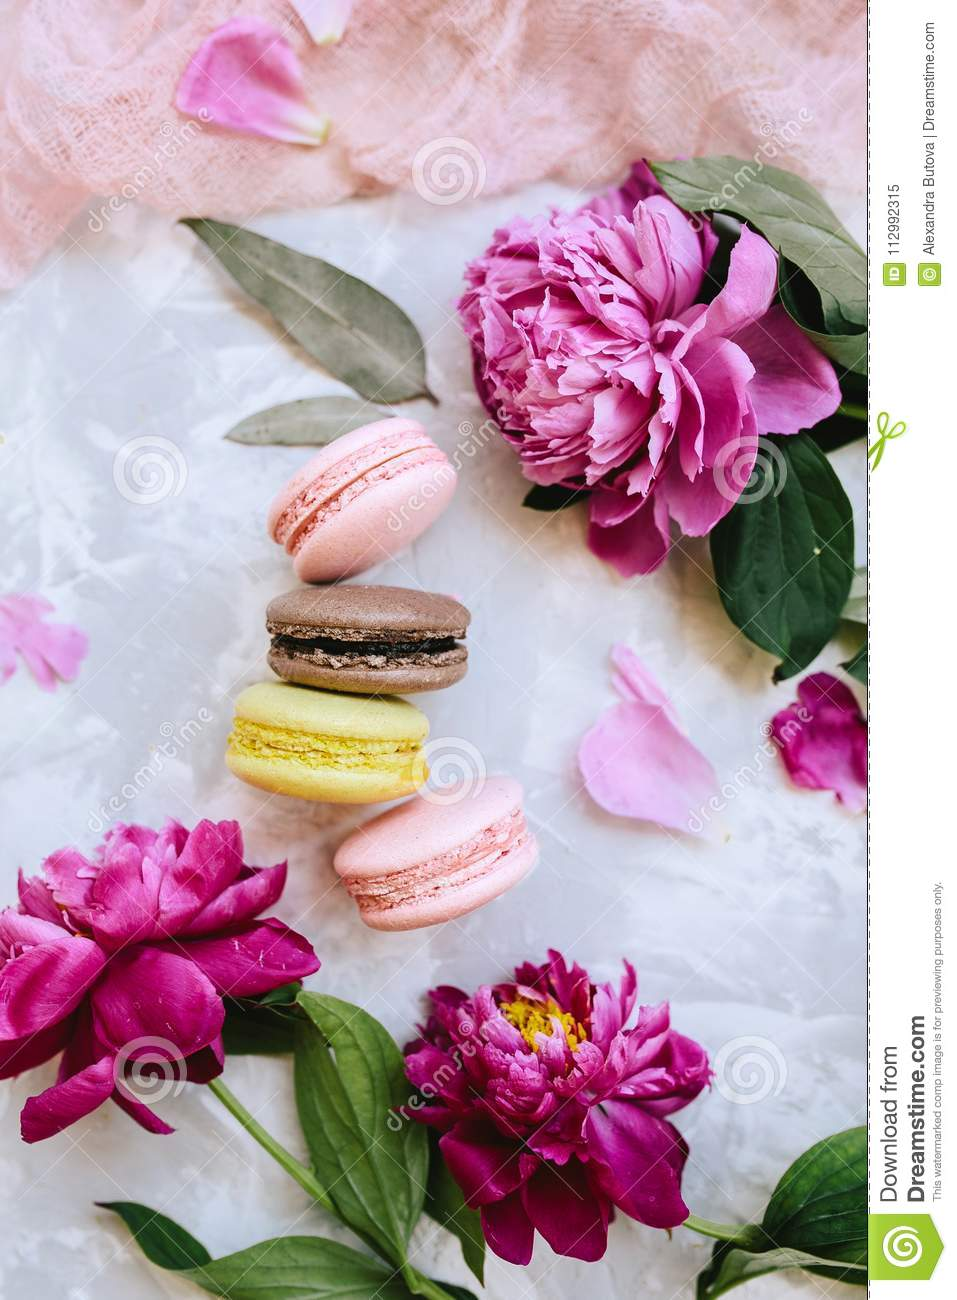 Spring composition flatlay: colorful macaroons with purple and pink peonies, green leaves on a light concrete background and a pin